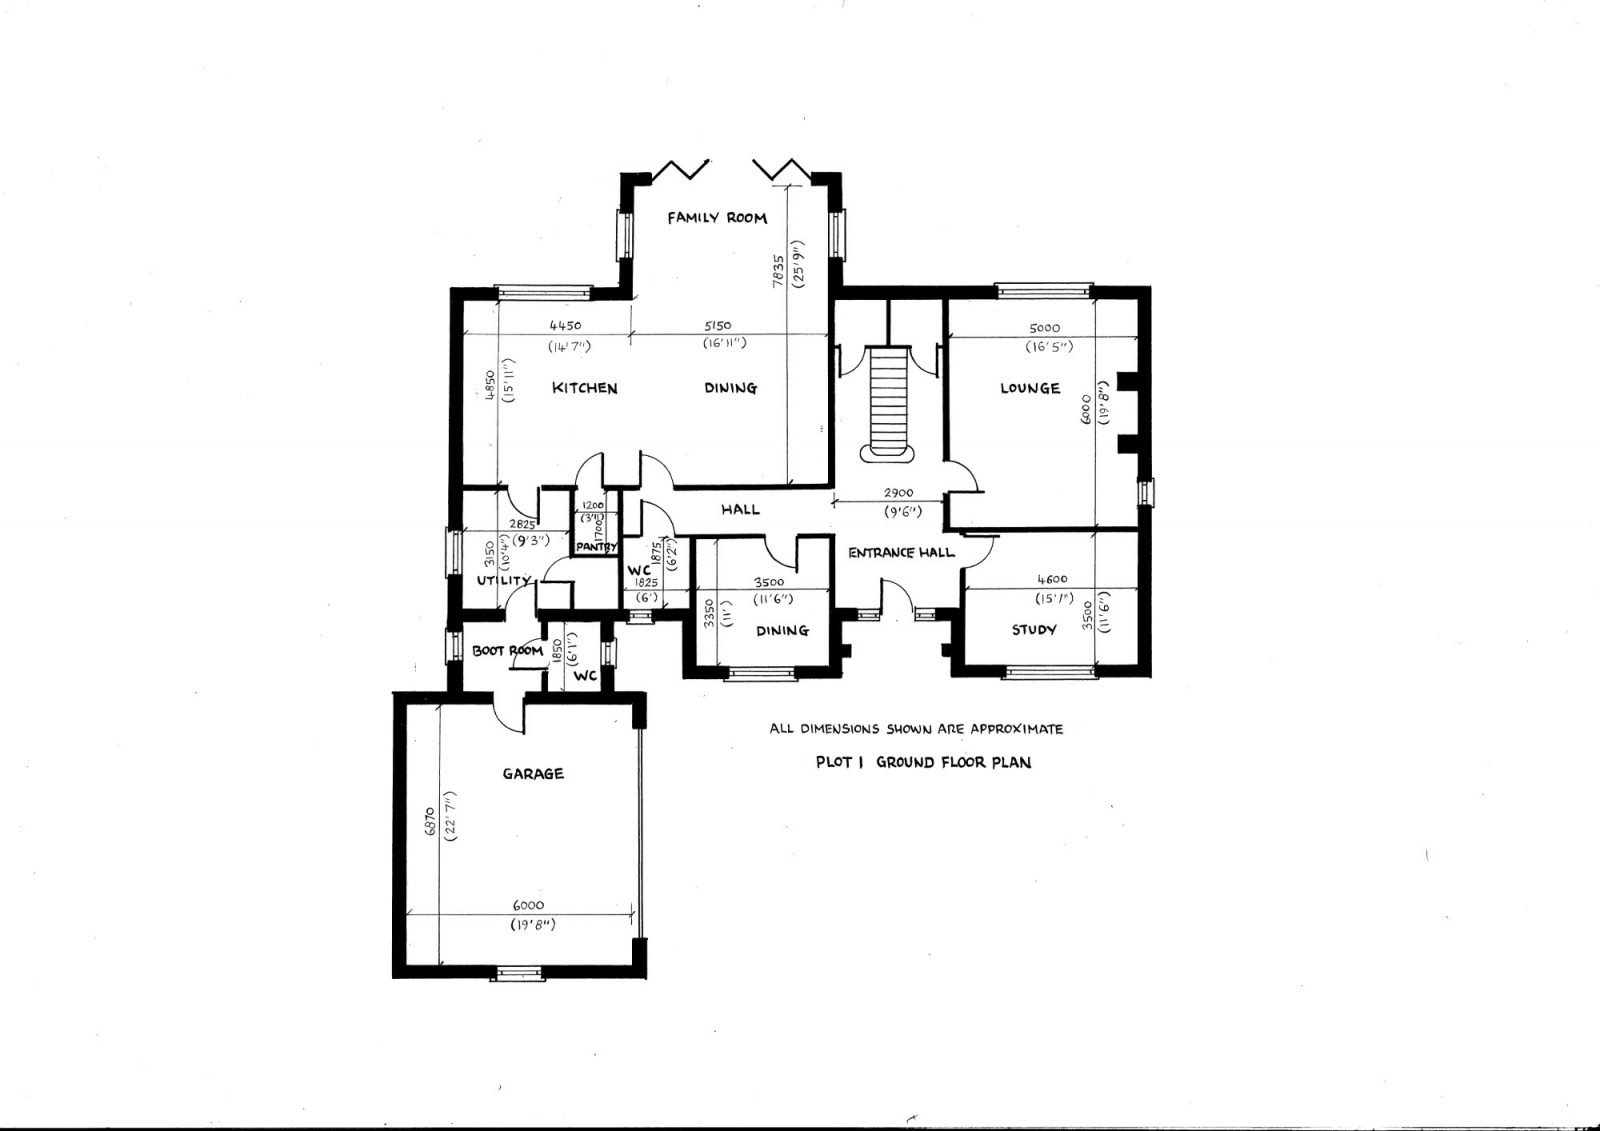 plot-1-rdc-ground-floor-plan